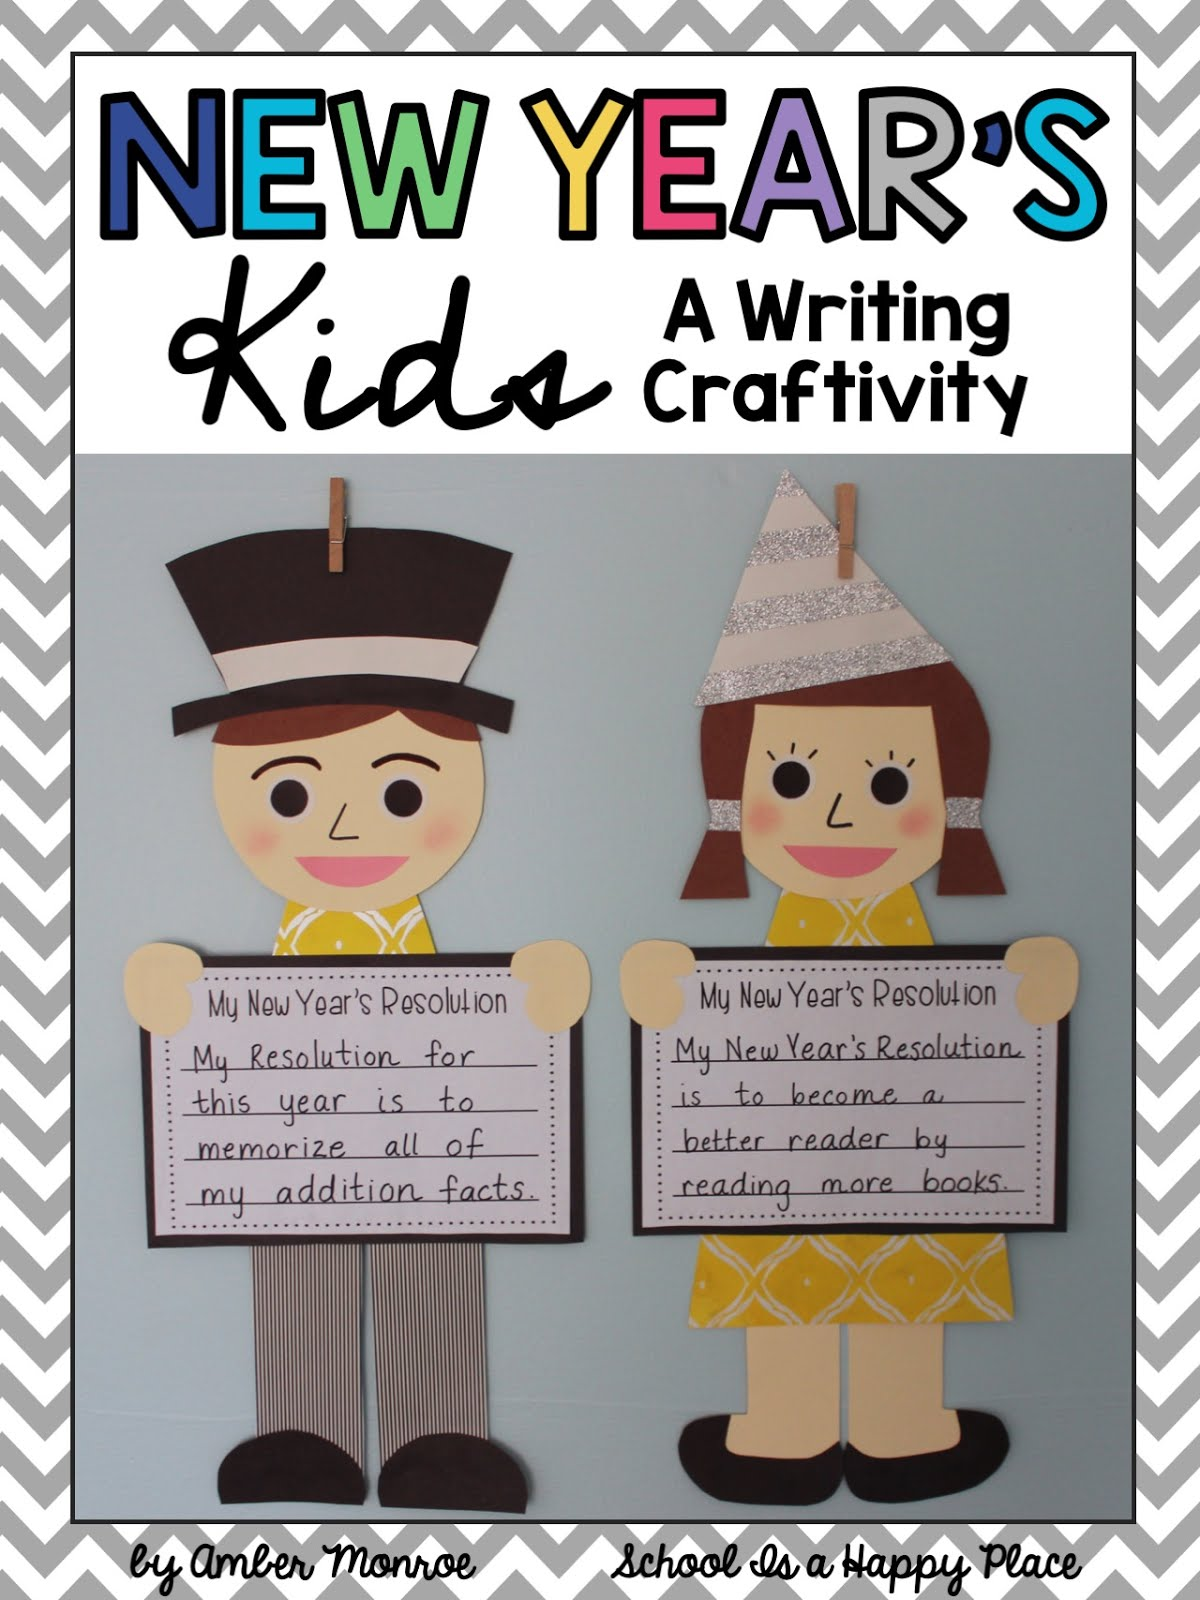 New Year Writing Craftivity